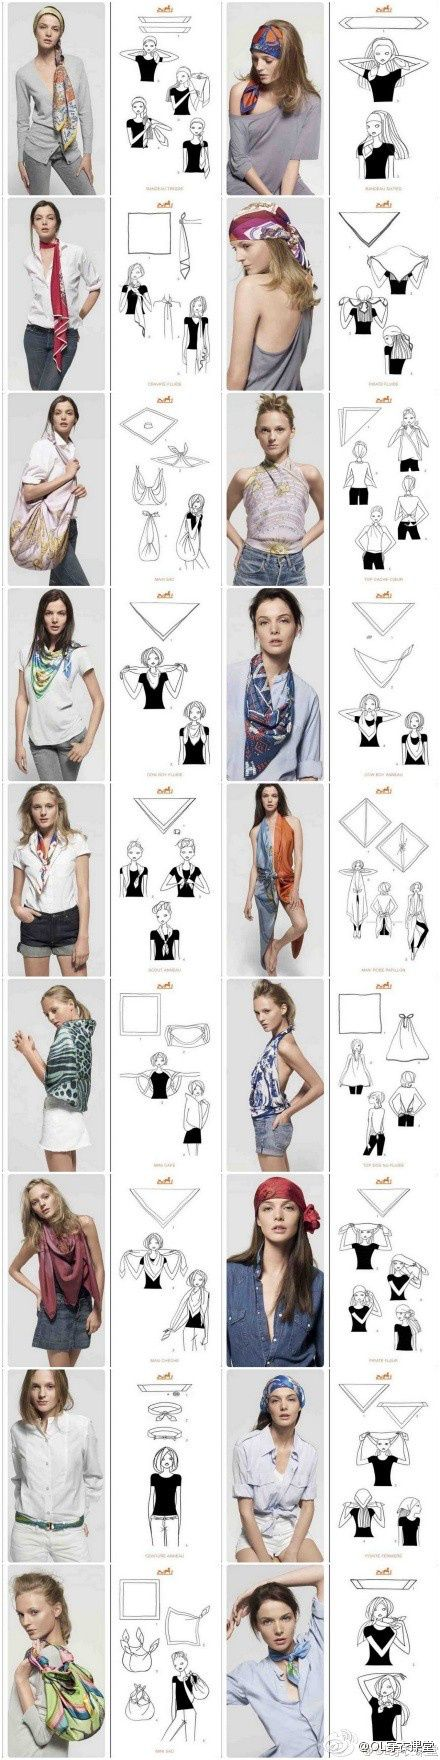 how to wear s scarf fashion